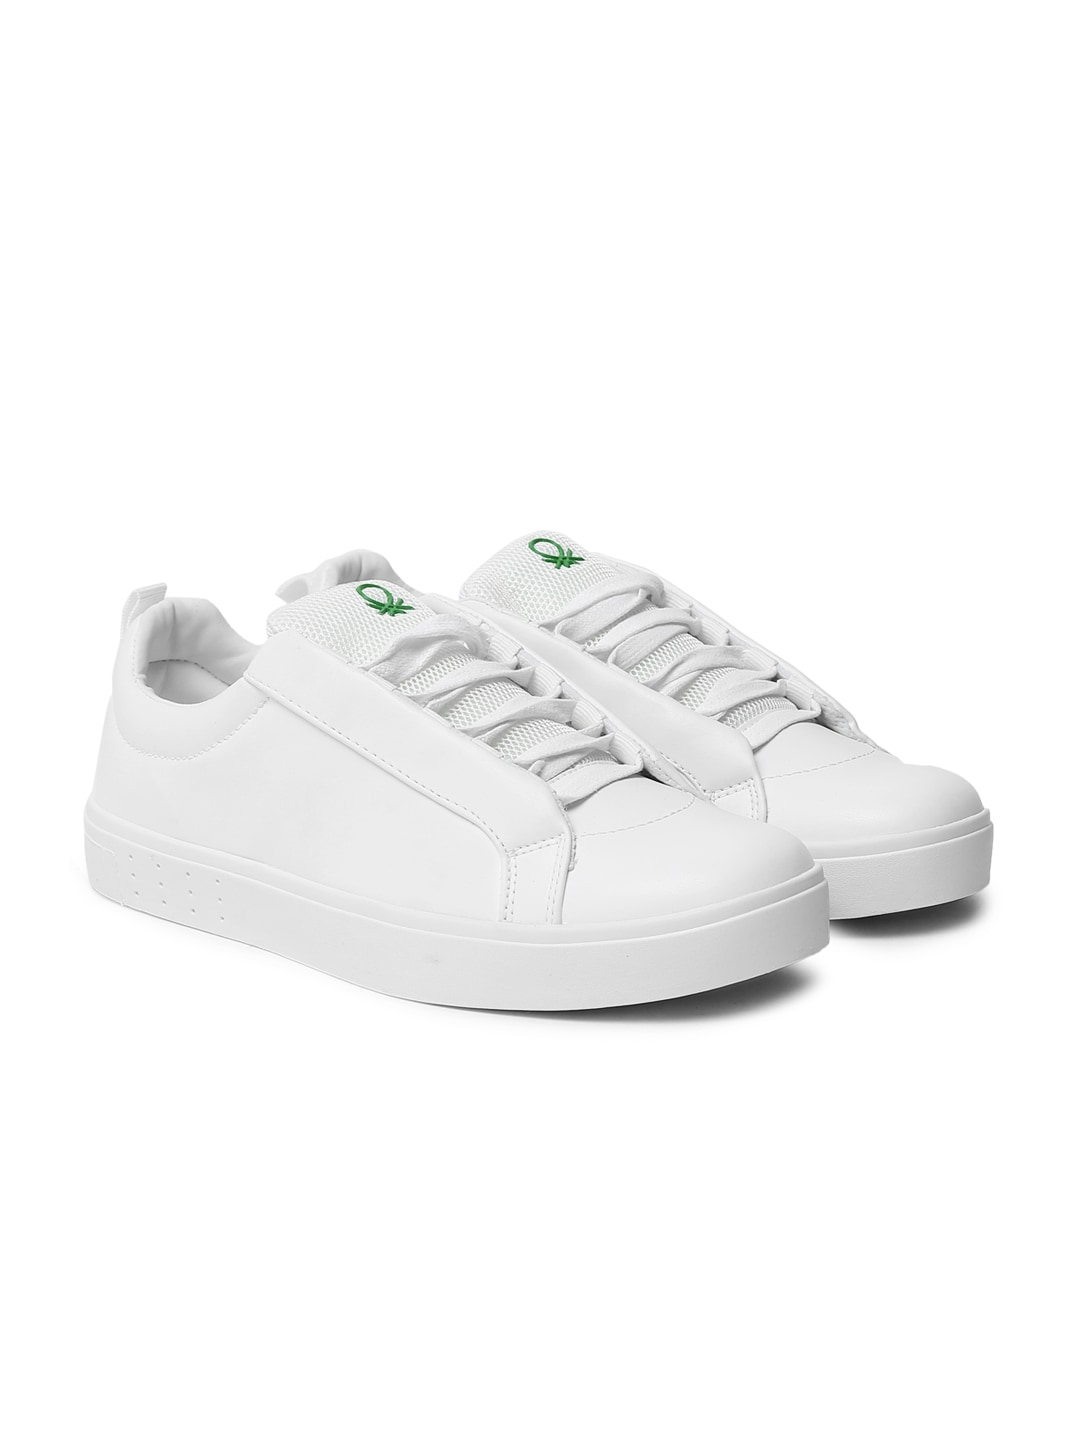 Ucb Shoes White